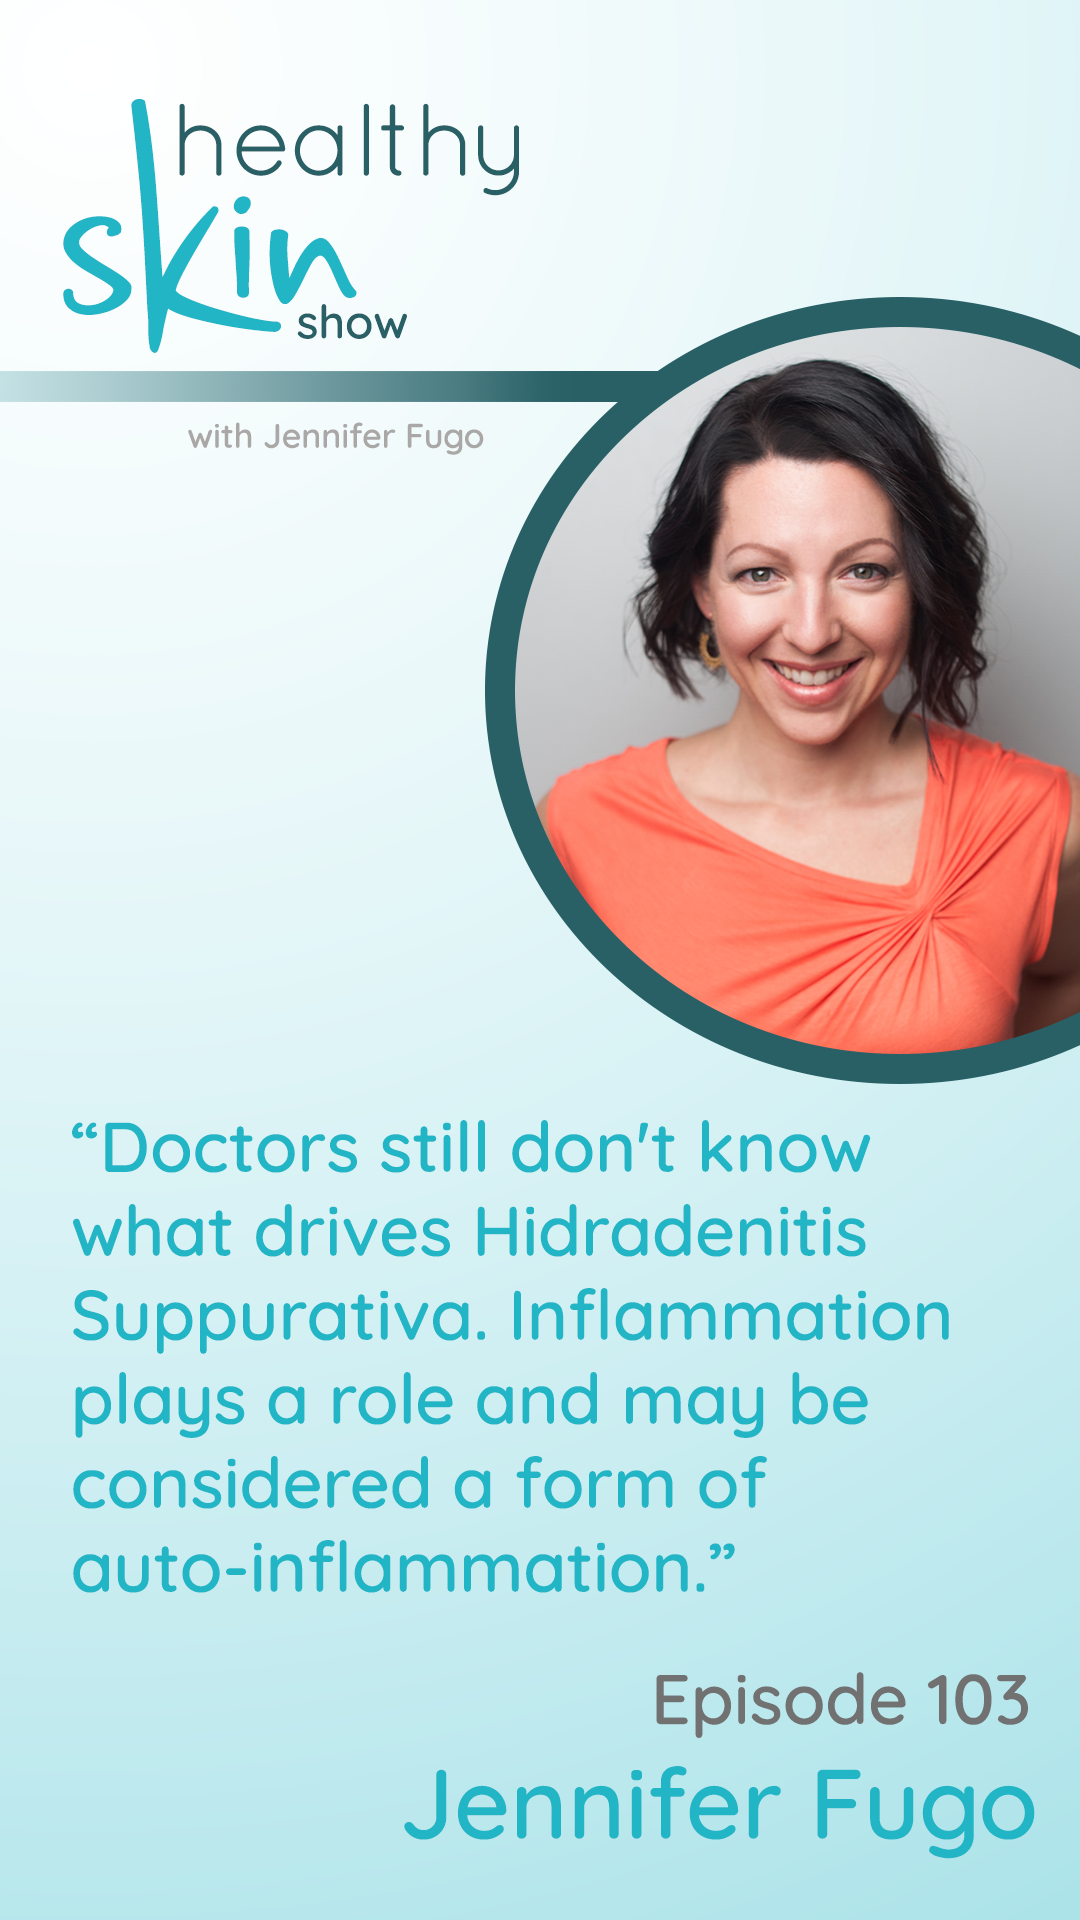 Doctors still don't know what drives Hidradenitis Suppurativa. Inflammation plays a role and may be considered a form of auto-inflammation.